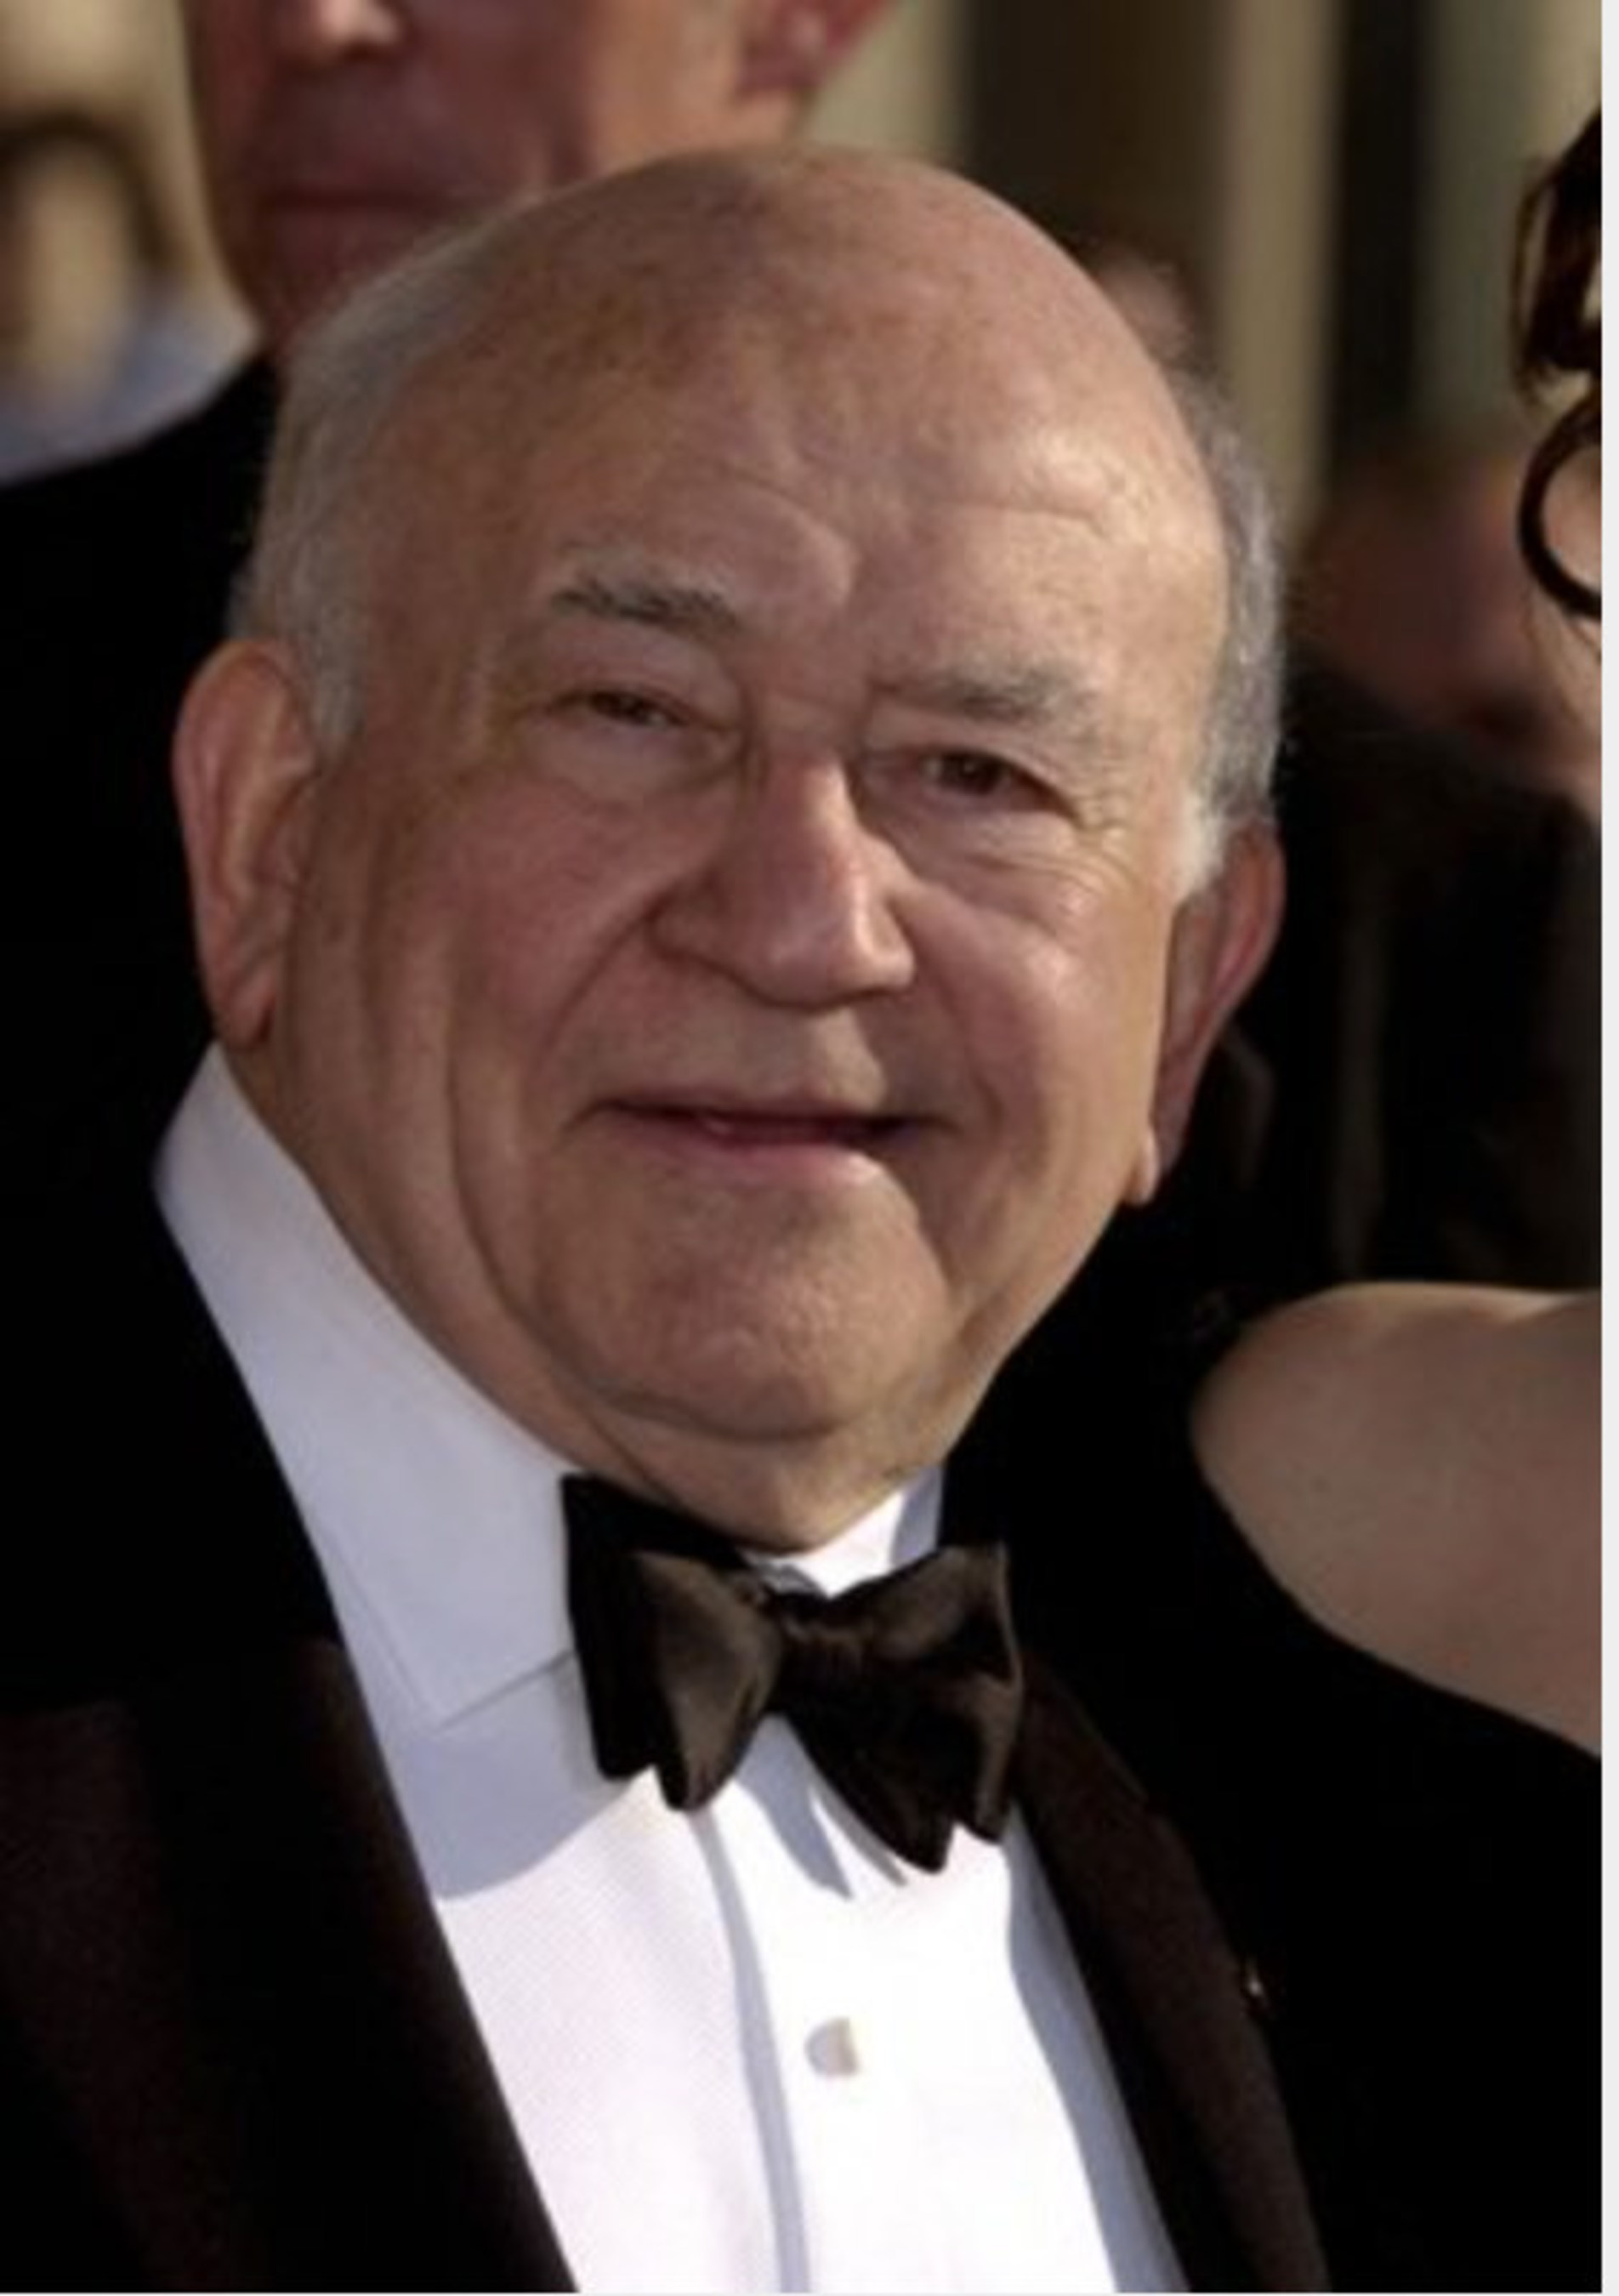 Ed Asner Stars in 'The Doppelganger Principle' Feature Film Campaign on Indiegogo